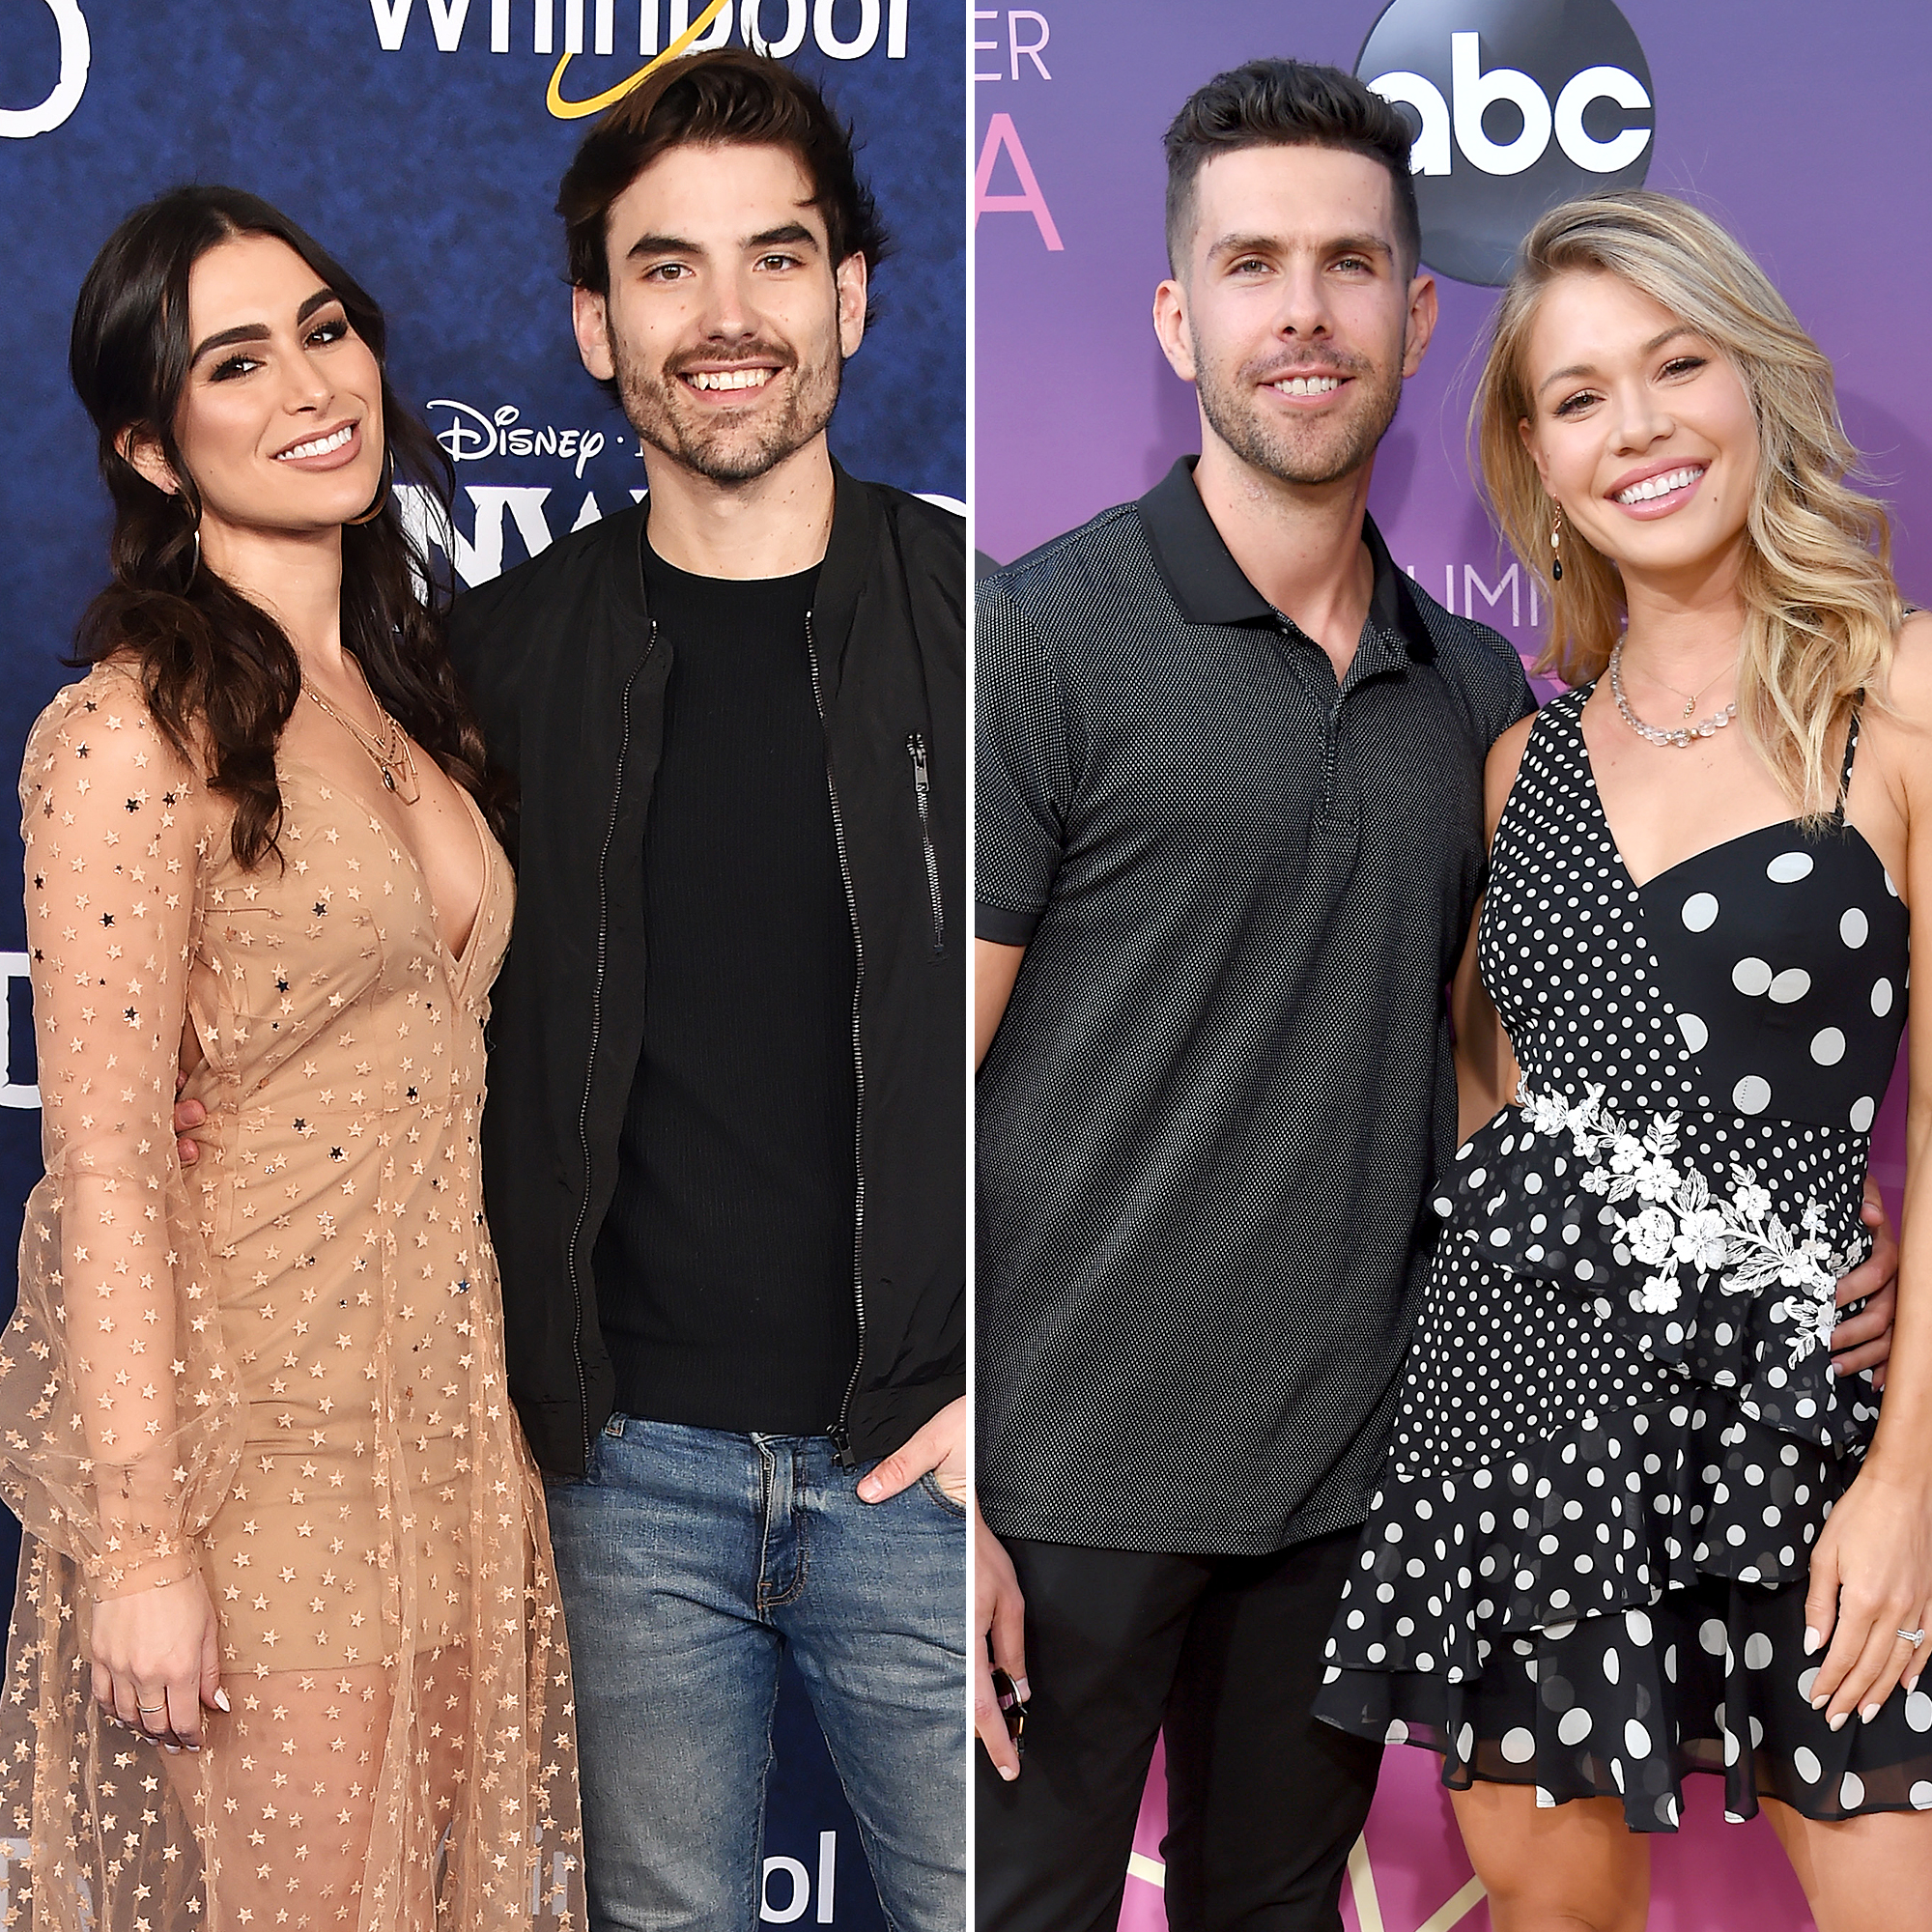 Ashley-Iaconetti-and-Jared-Haibon-Chris-Randone-and-Krystal-Nielson-hoping-to-rekindle